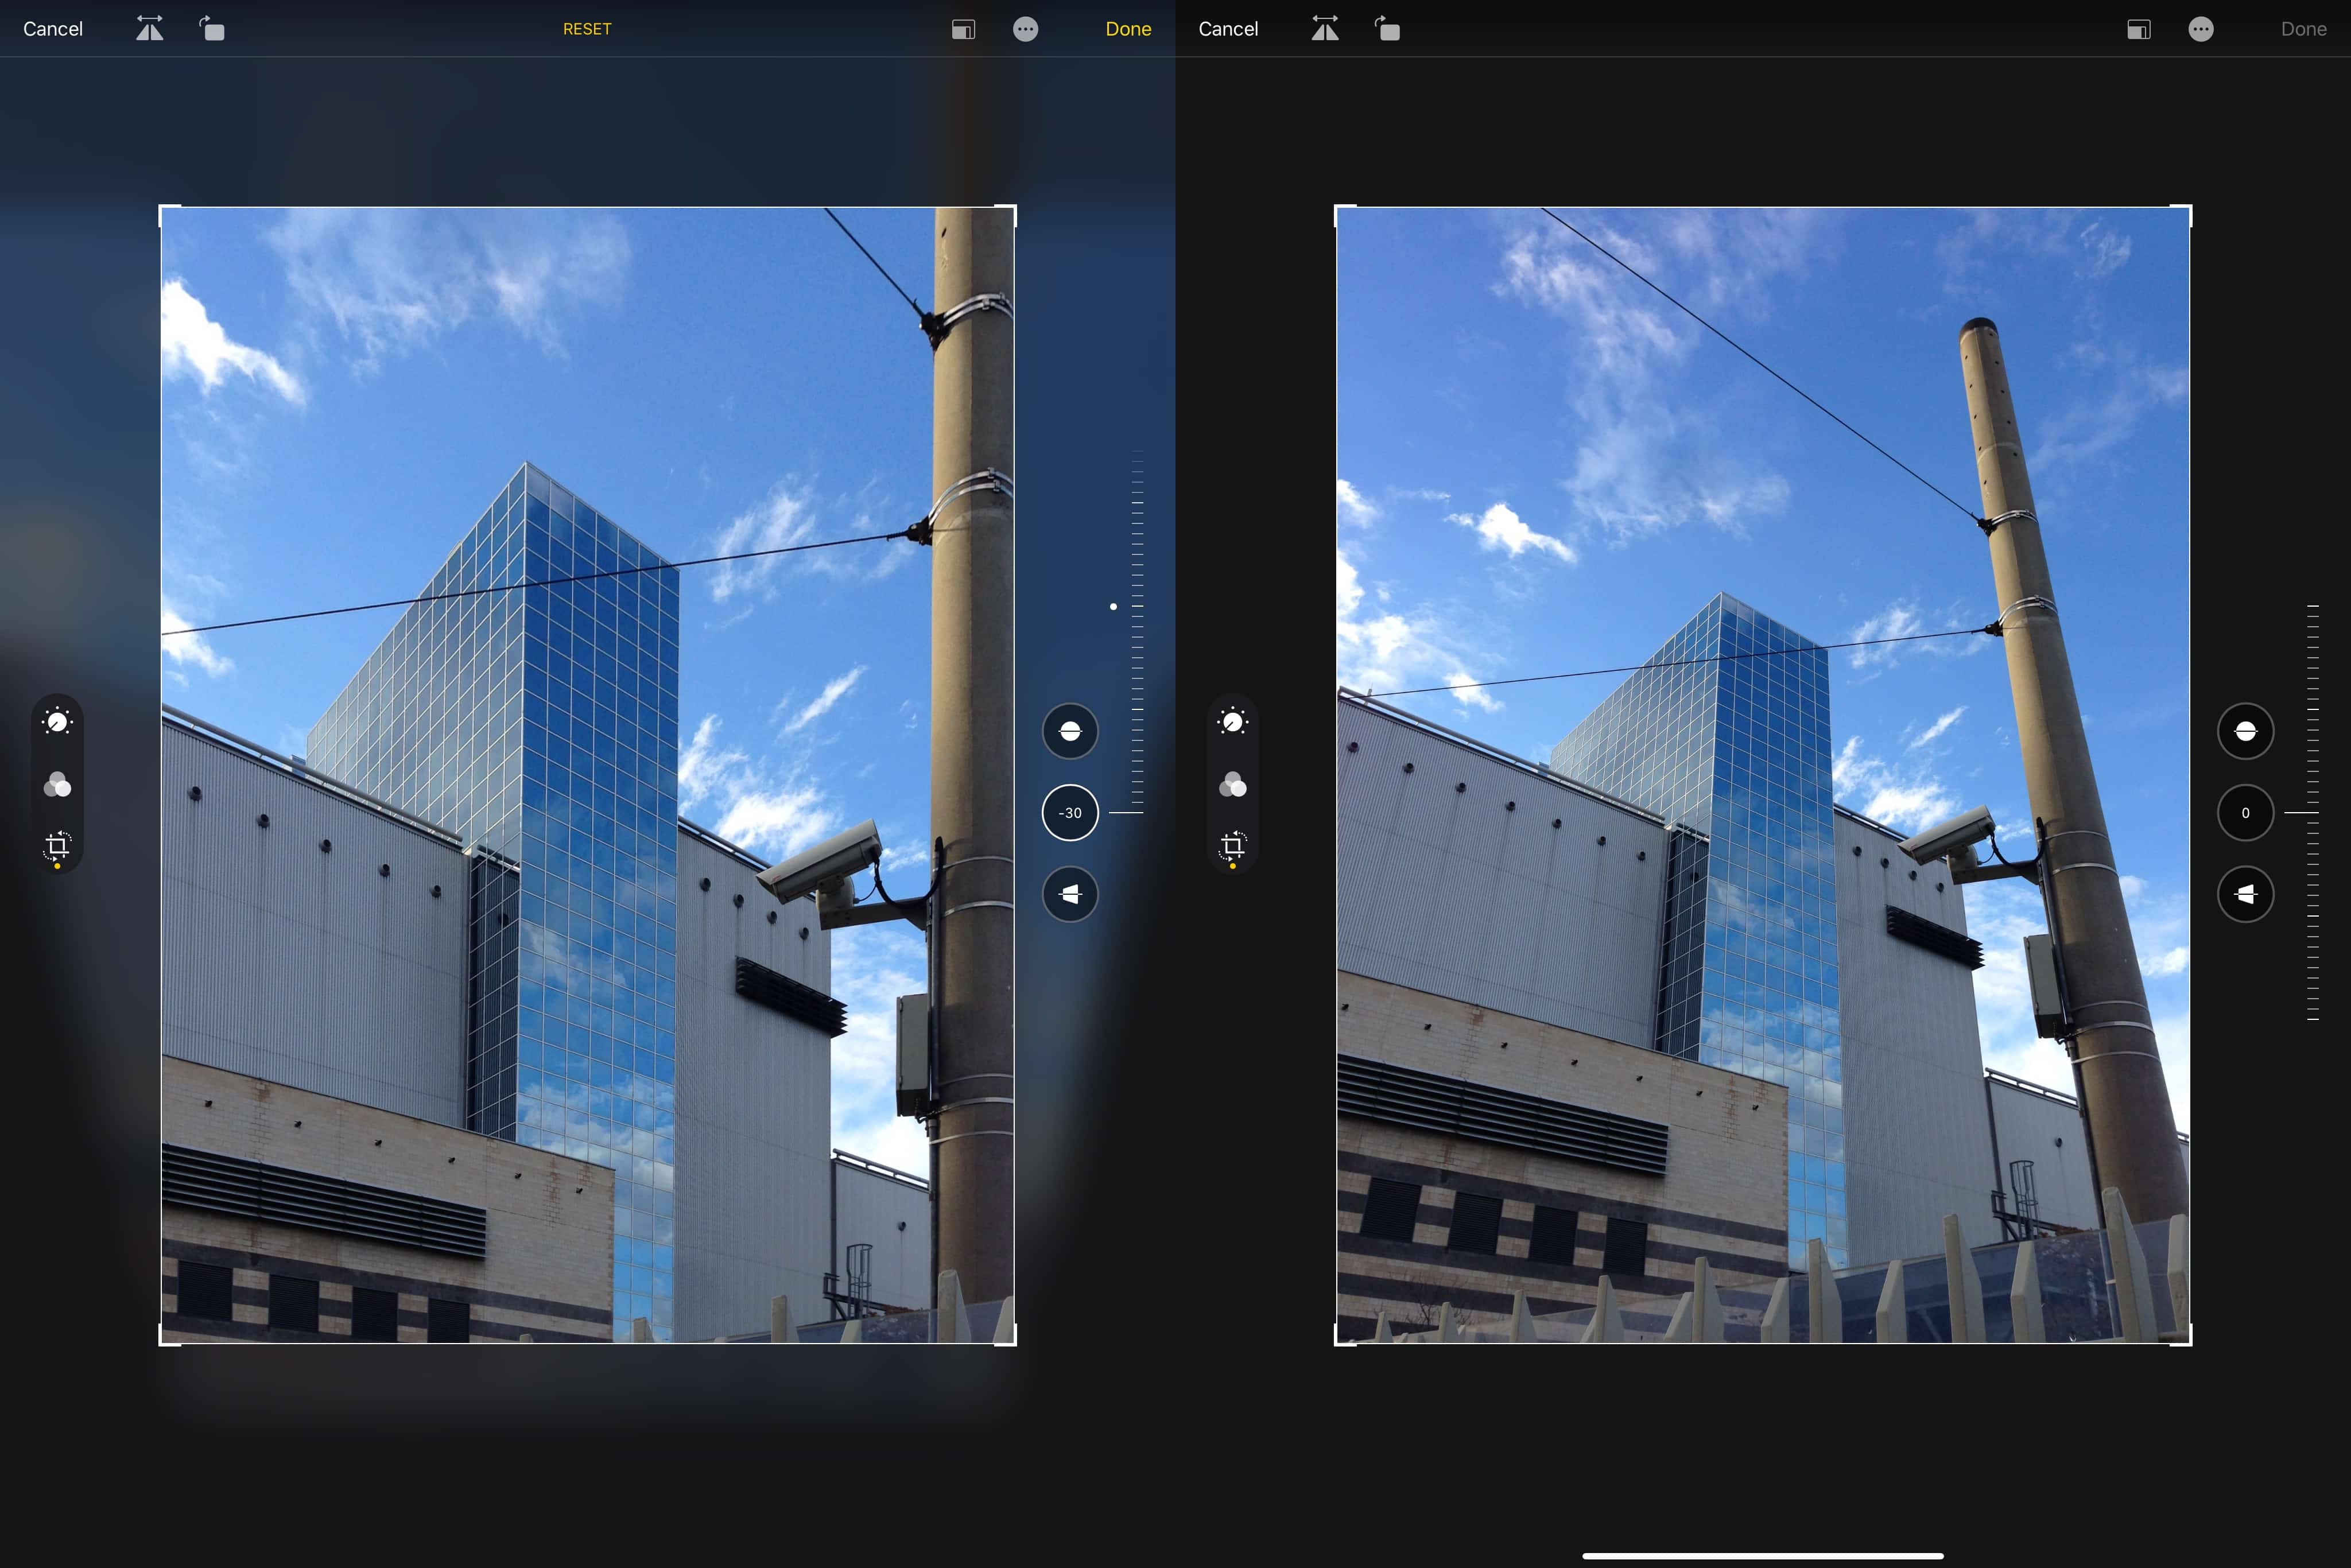 Skewing image in iOS: After and before.